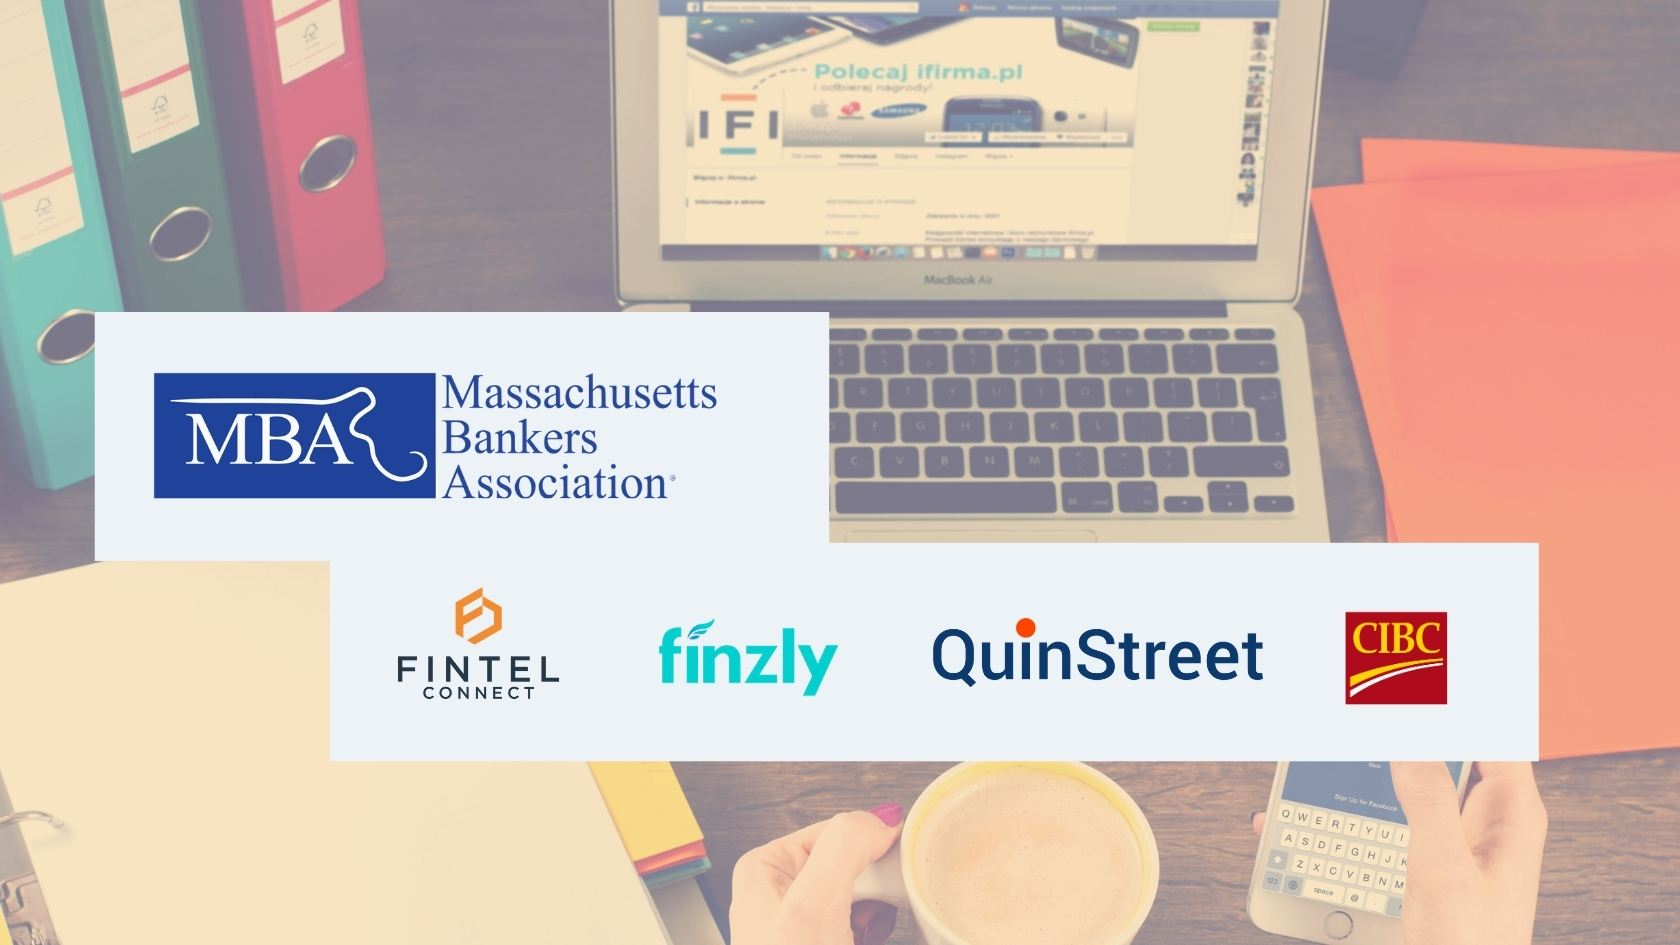 MA Bankers Association Webinar w/ Fintel Connect